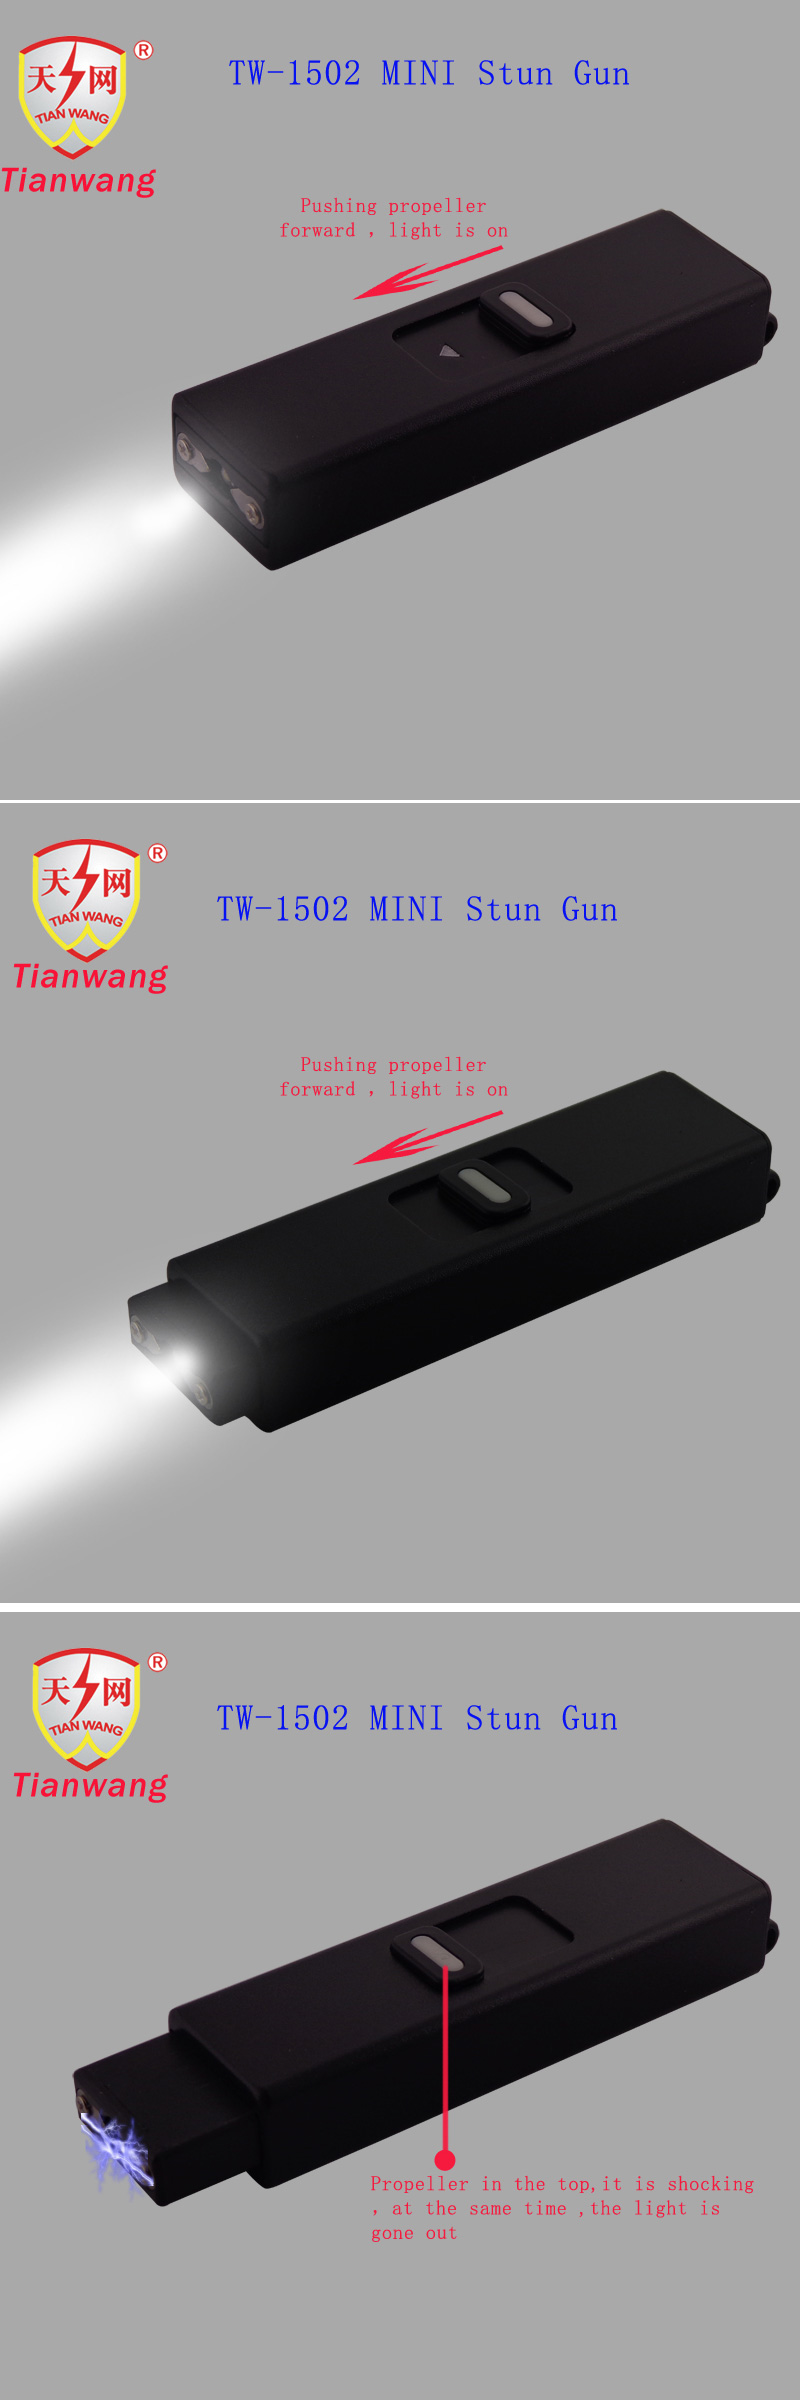 2016 Hot Miniature Stun Gun with Key Chain